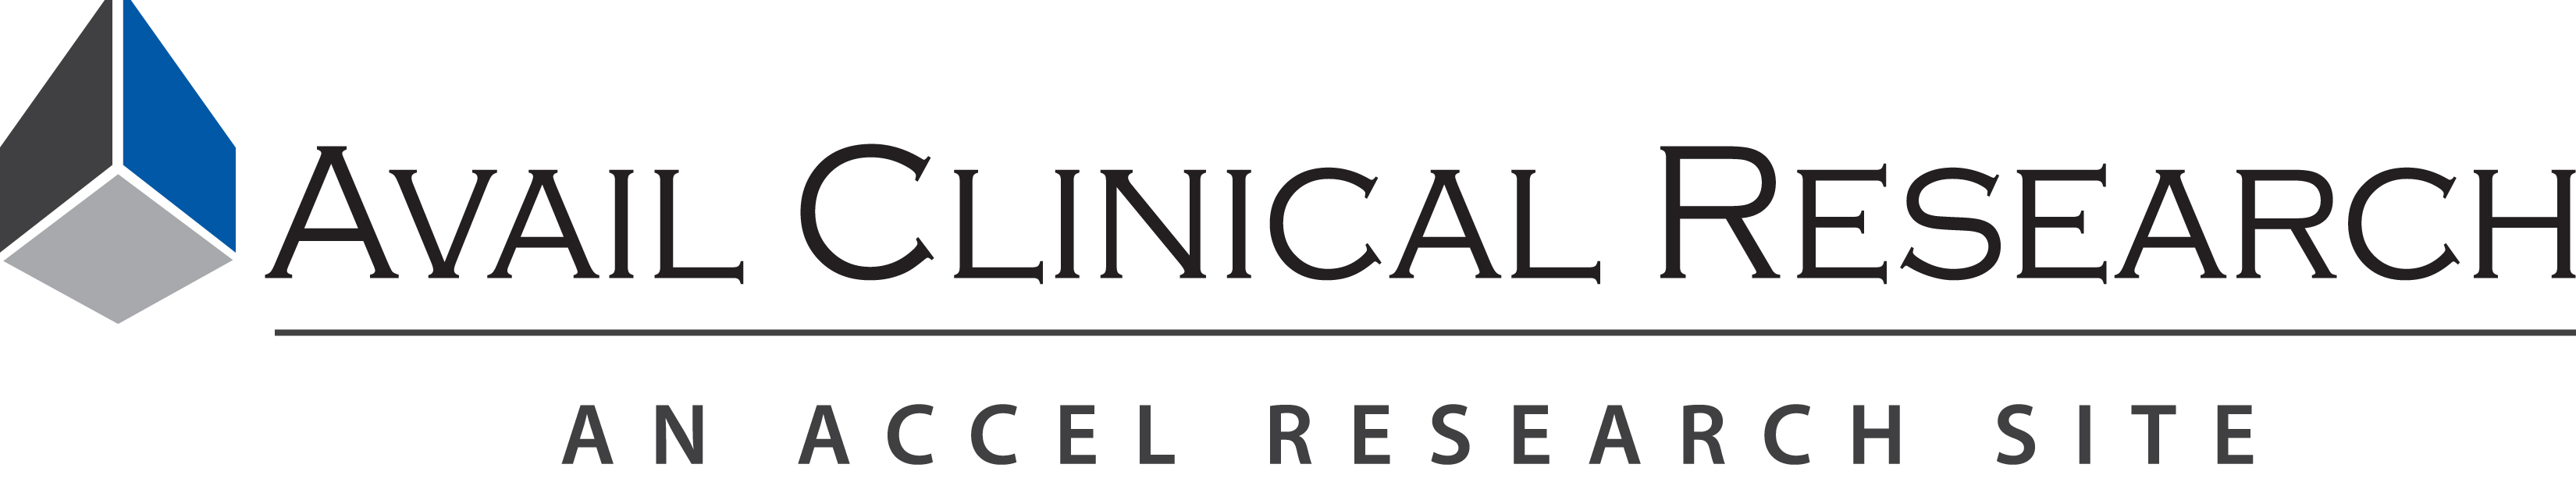 Avail Clinical Research - An Accel Research Site